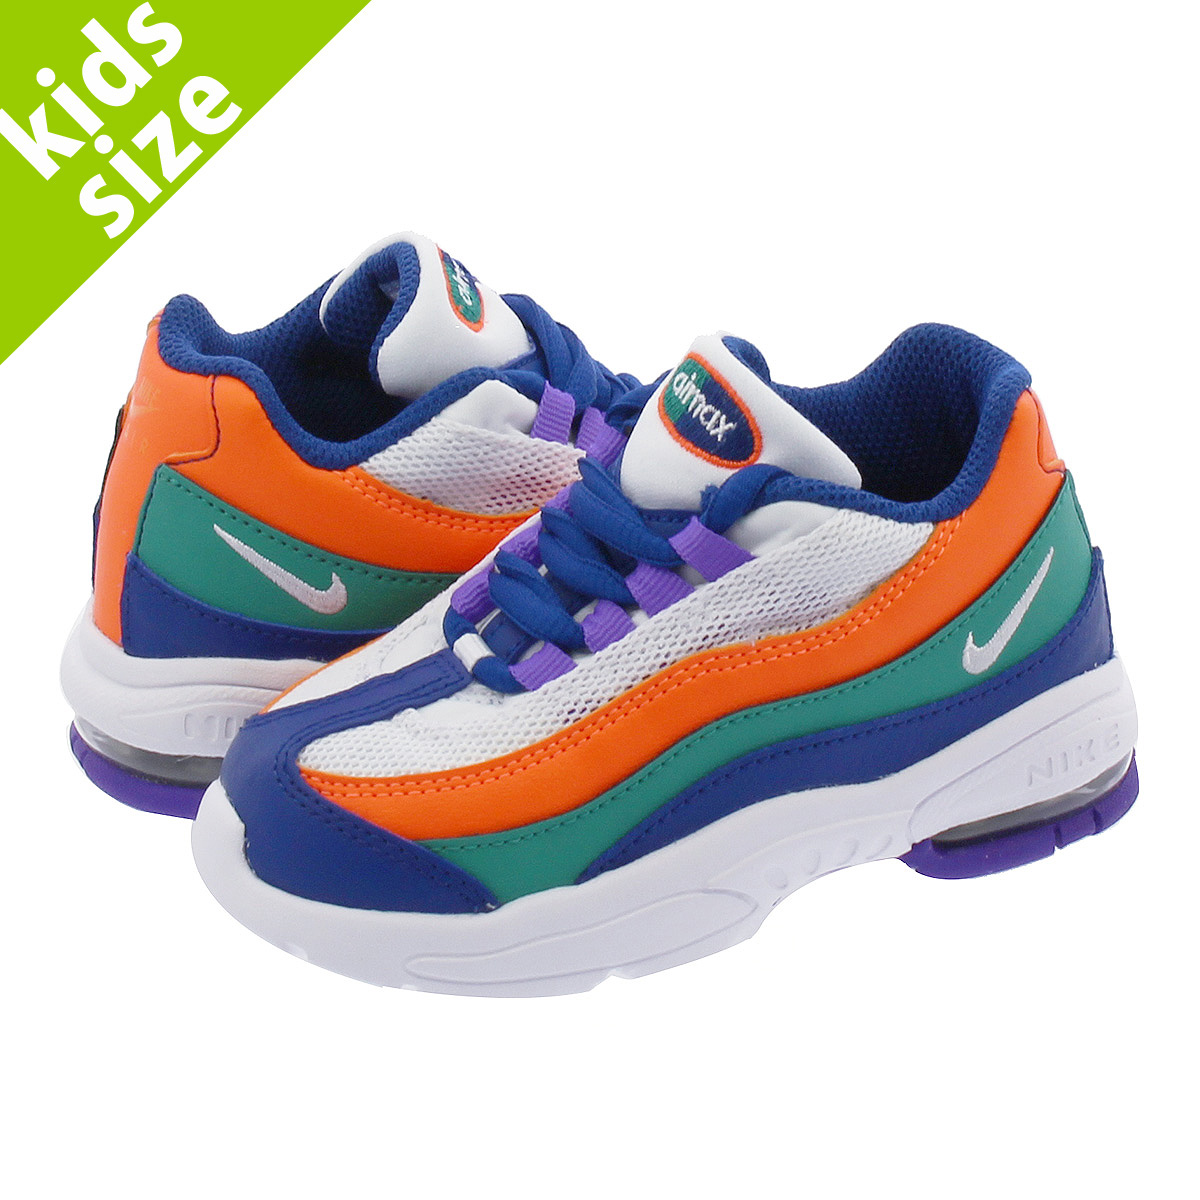 blue green and orange air max 95